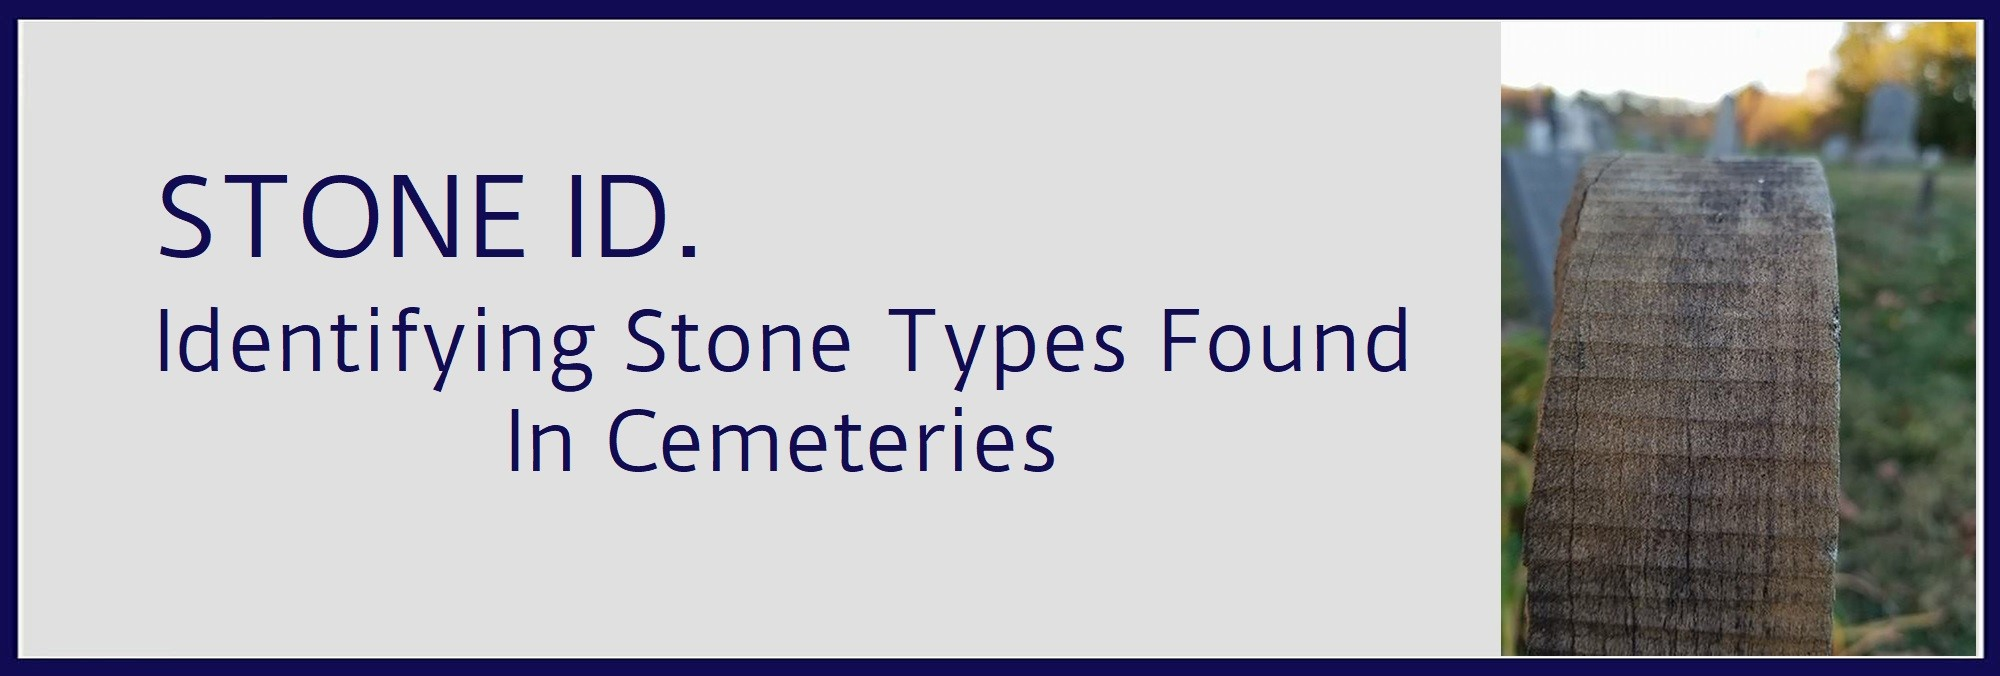 Stone ID – Cemetery Conservators for United Standards